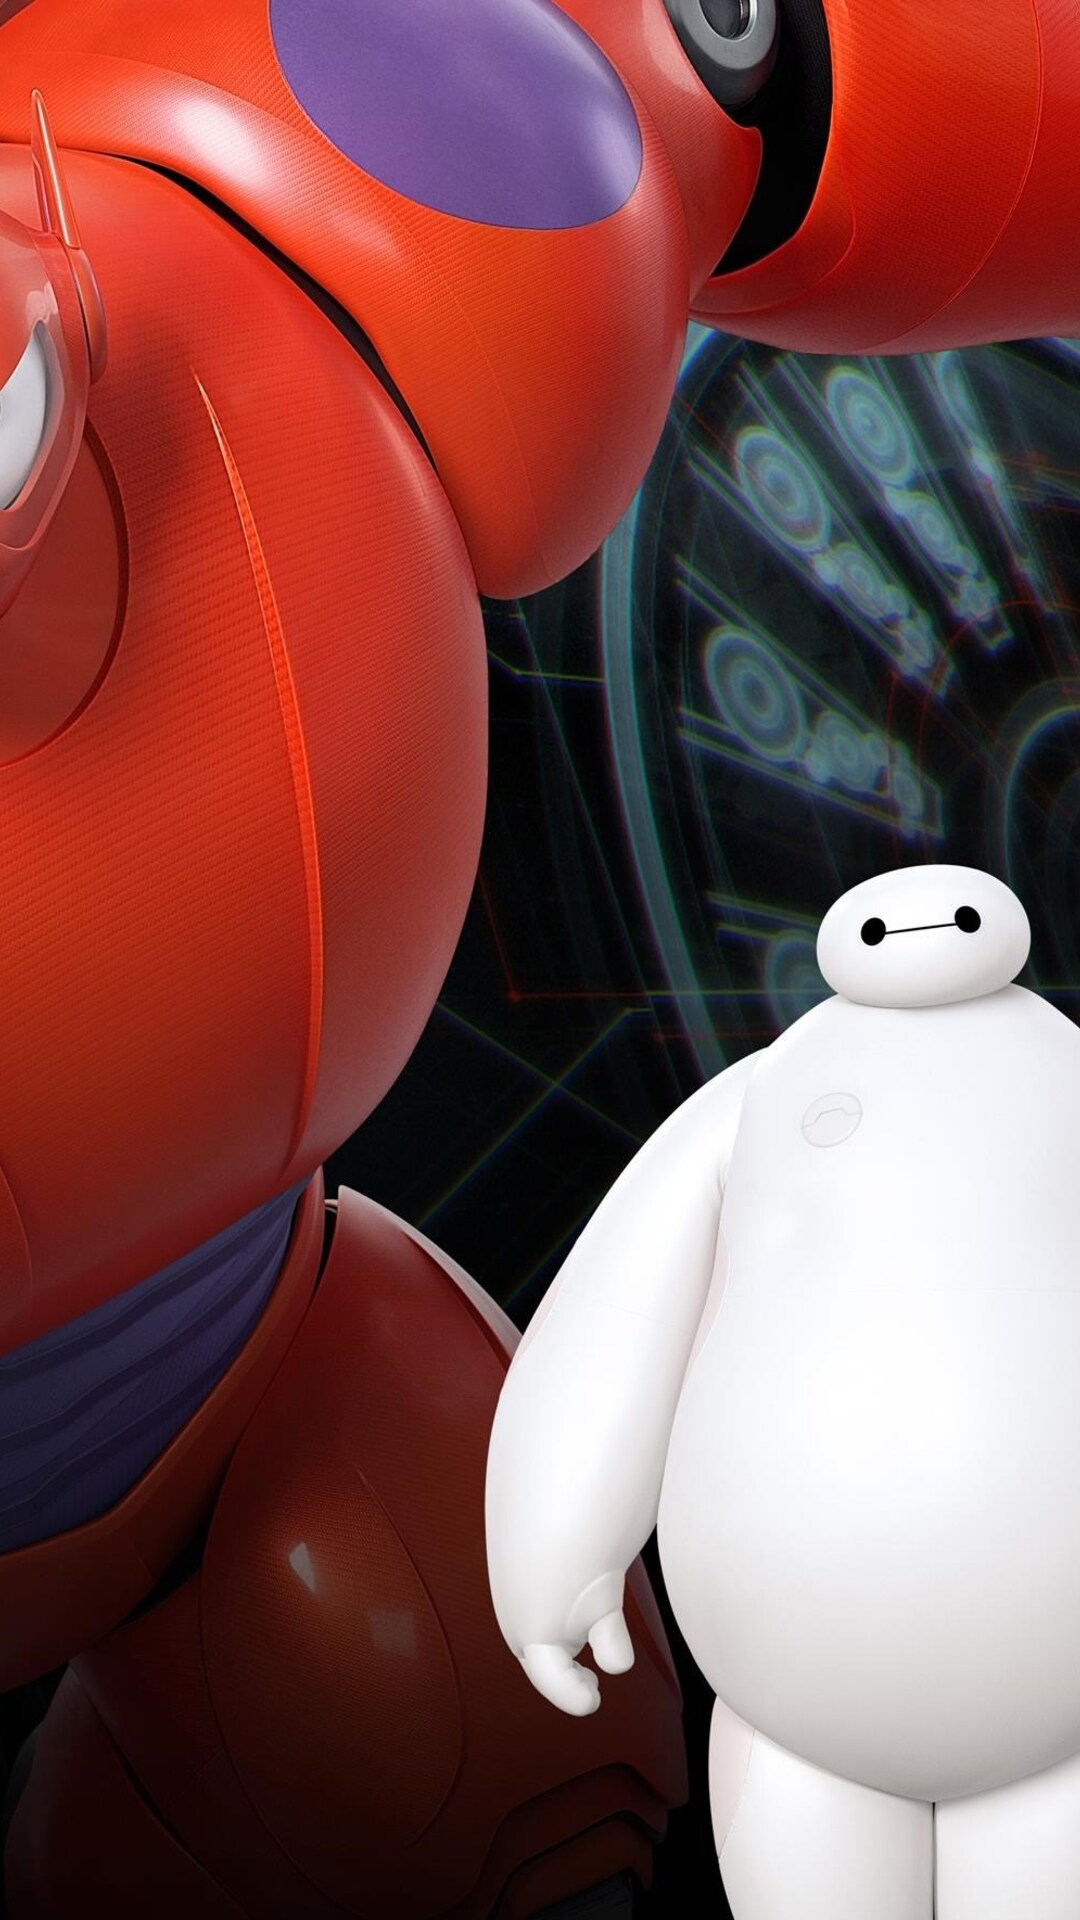 1080x1920 Baymax In Big Hero 6 Movie Iphone 7.6s.6 Plus. Pixel xl .One Plus 3.3t.5 HD 4k Wallpapers. Images. Backgrounds. Photos and Pictures